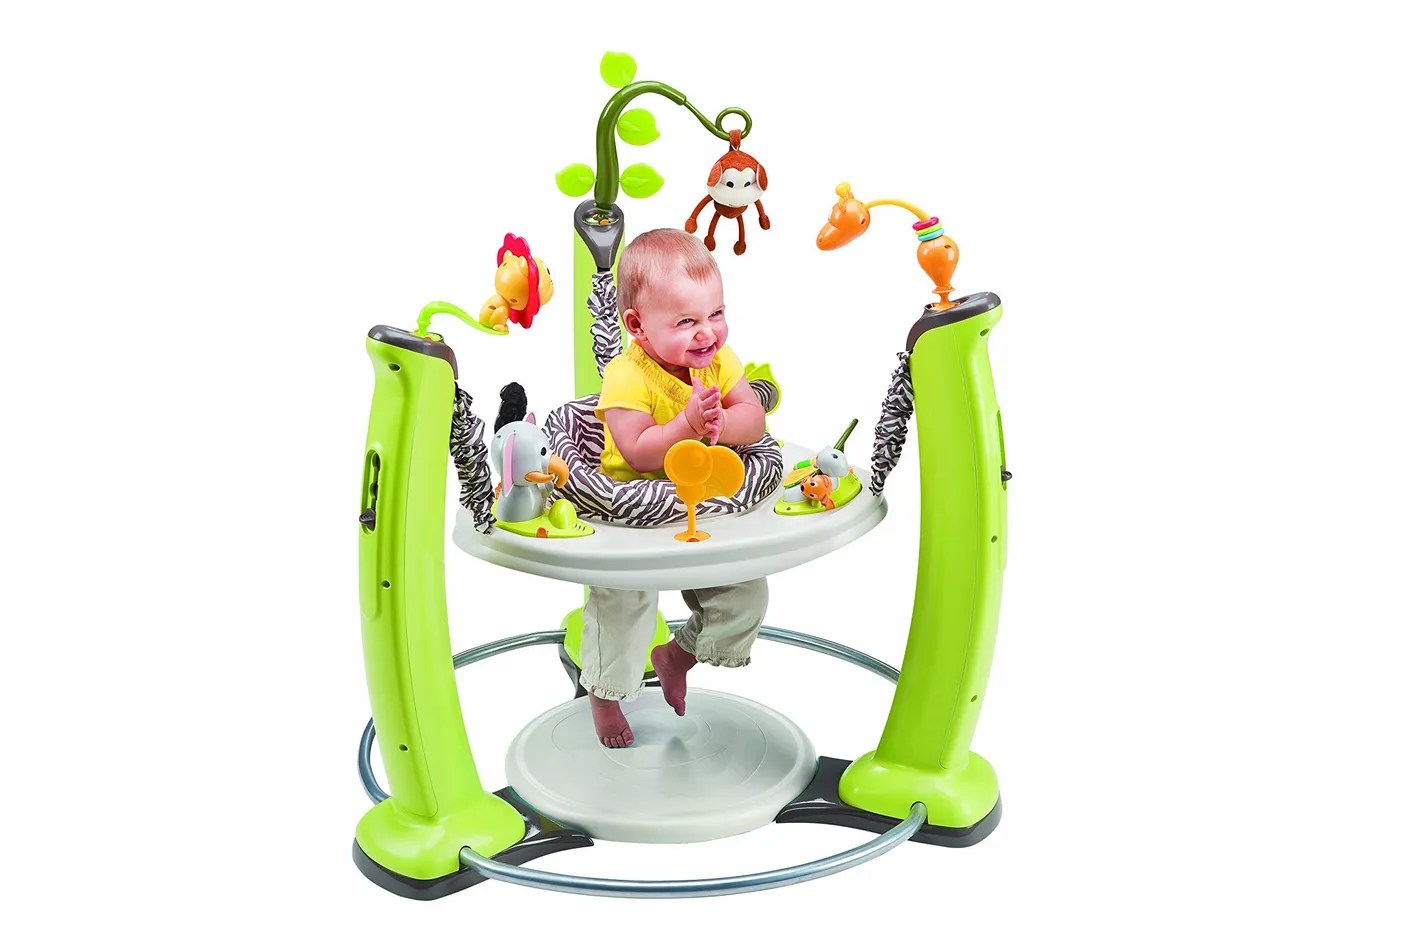 walker bouncing chair eames knock off the best baby bouncers and jumpers reviews 2017 evenflo exersaucer learn jumper jungle